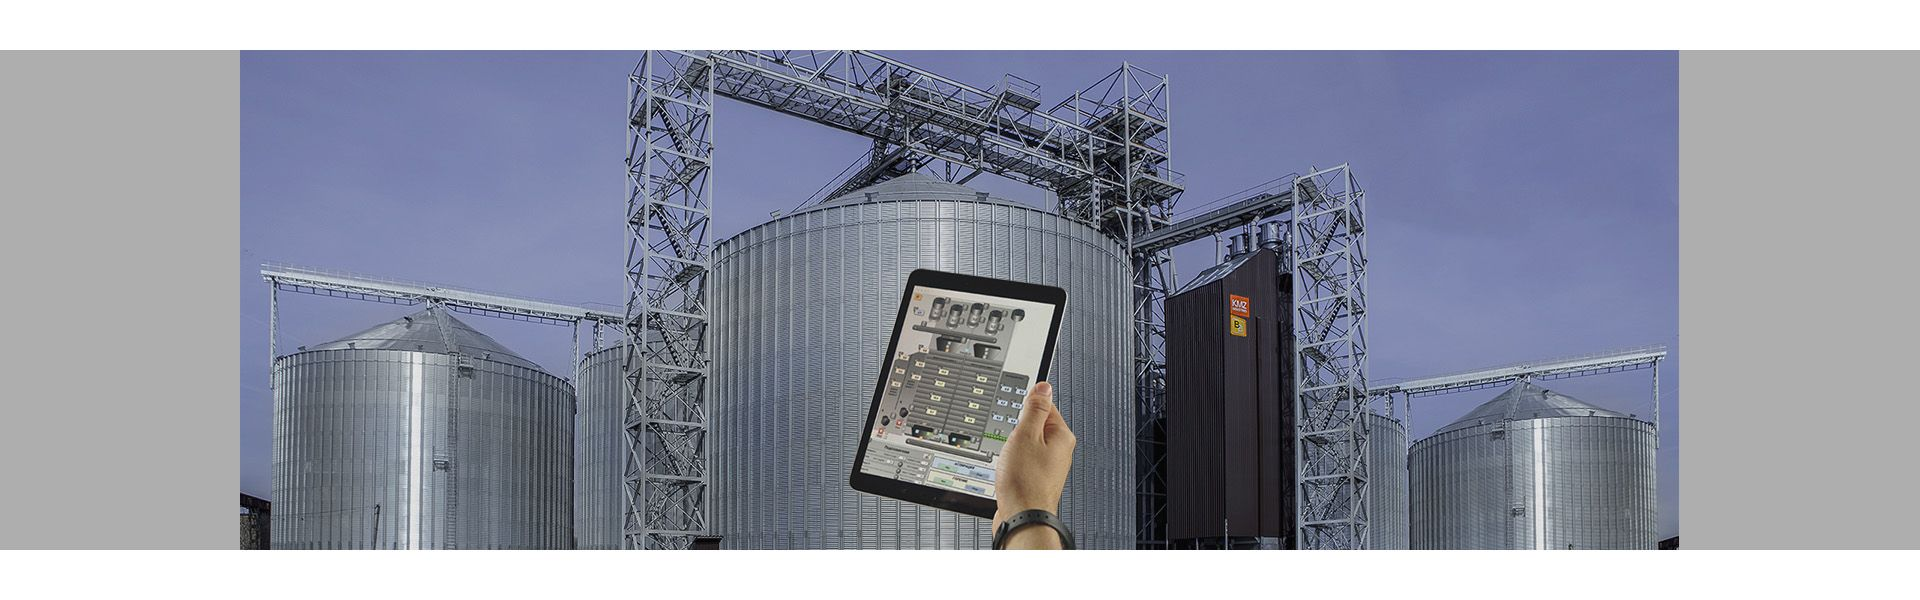 Automated control of grain storage complex